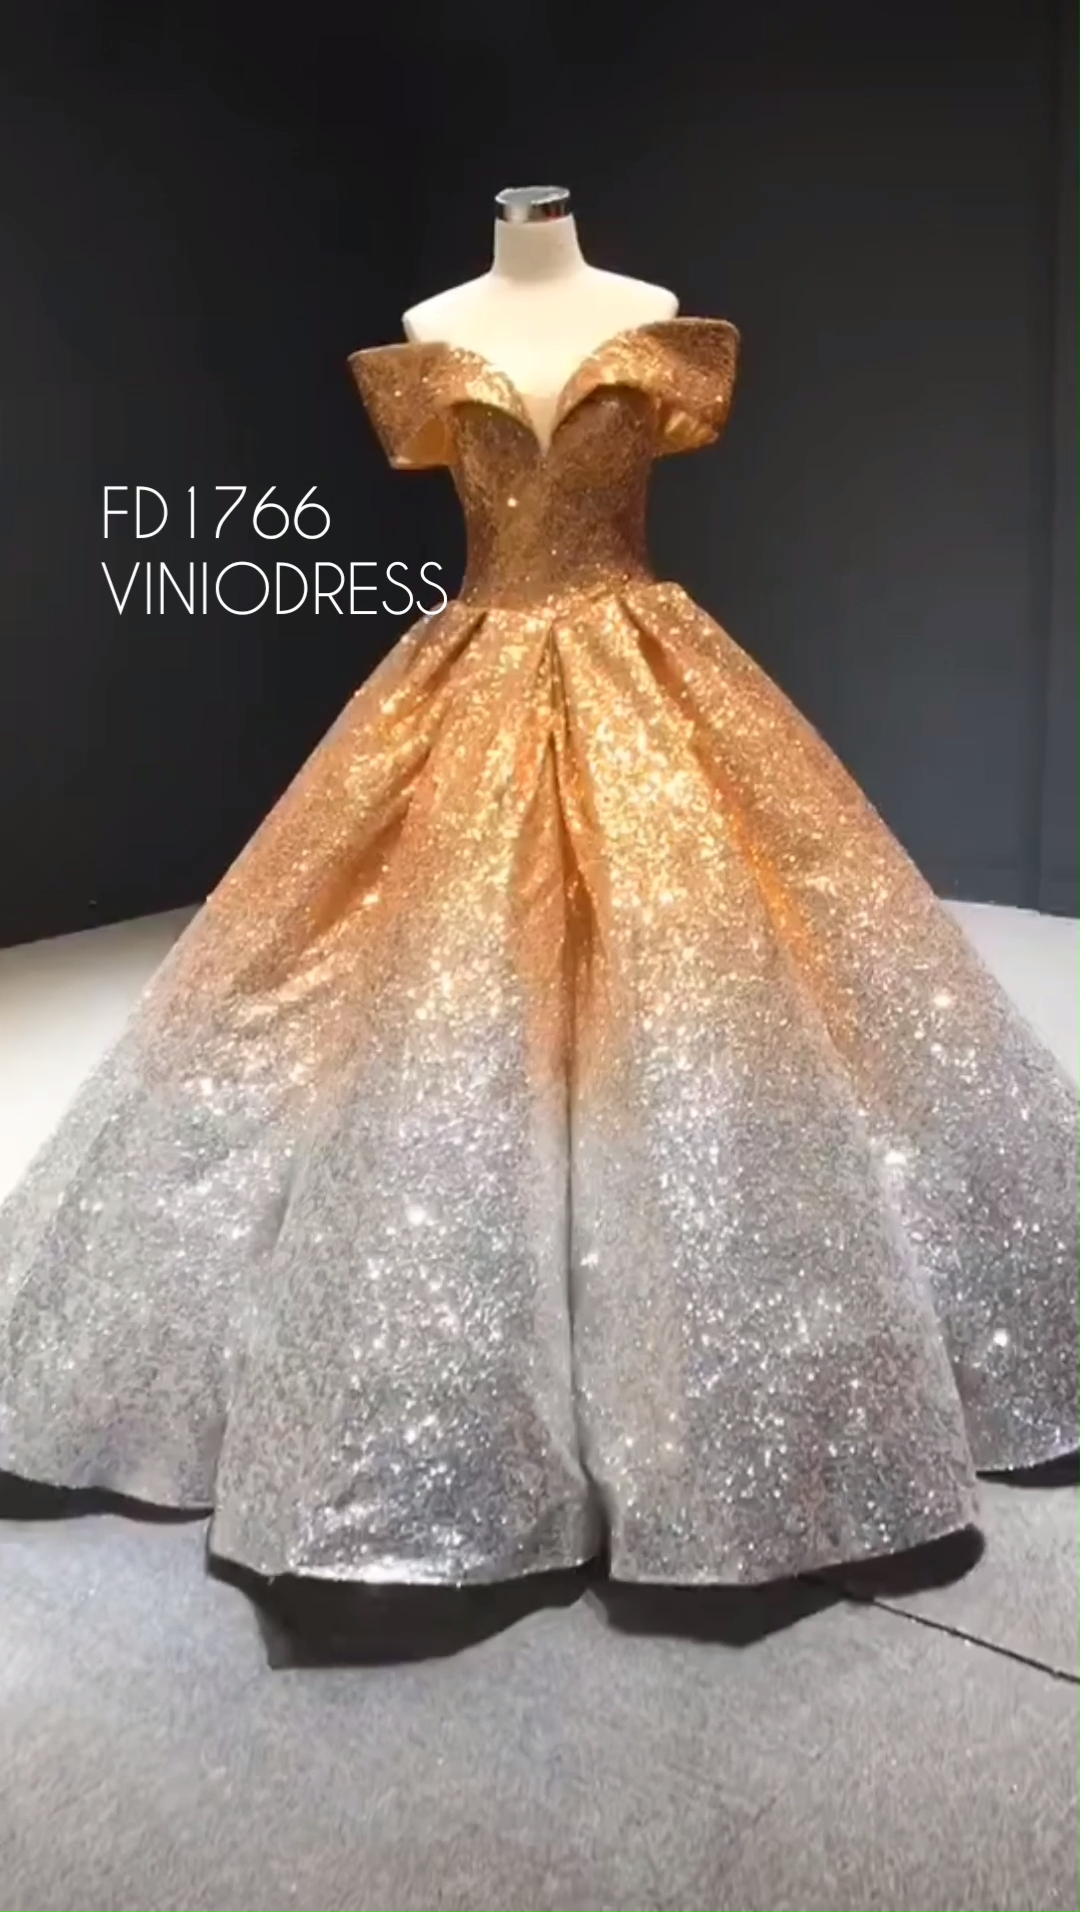 Classy and Vintage Ombre Sequin Ball Gowns Sparkly Quince Dresses FD1766 -   15 dress Quinceanera court ideas